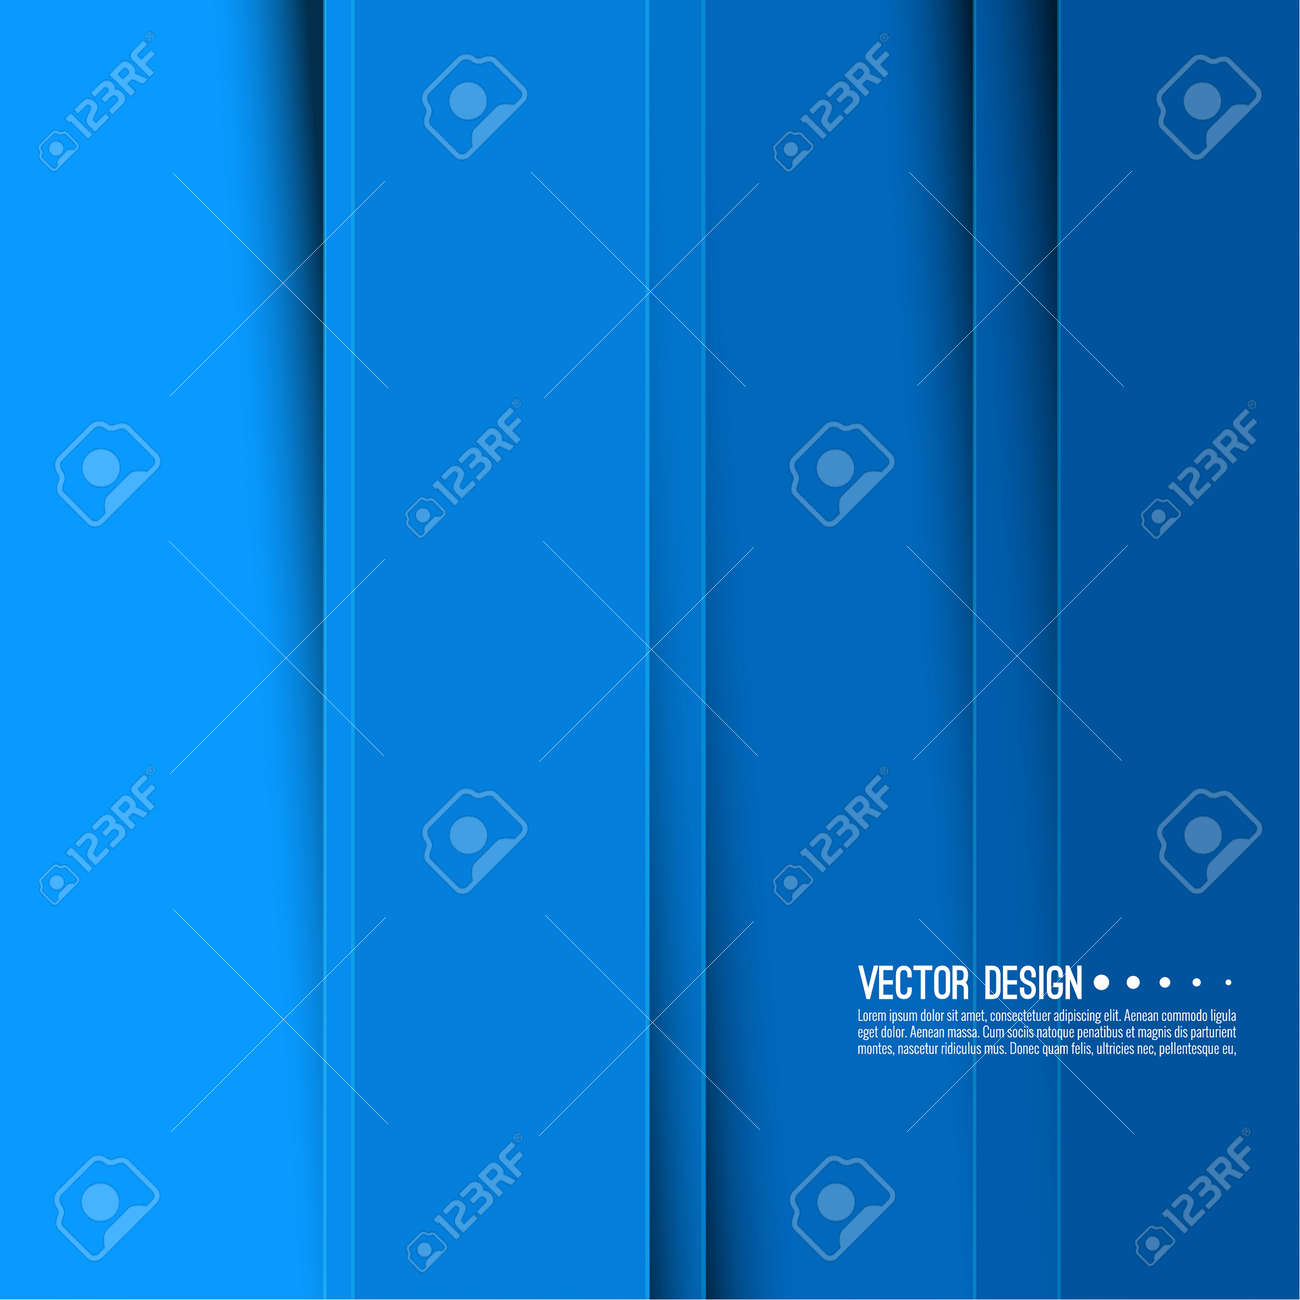 Abstract background with stripes. - 173117059